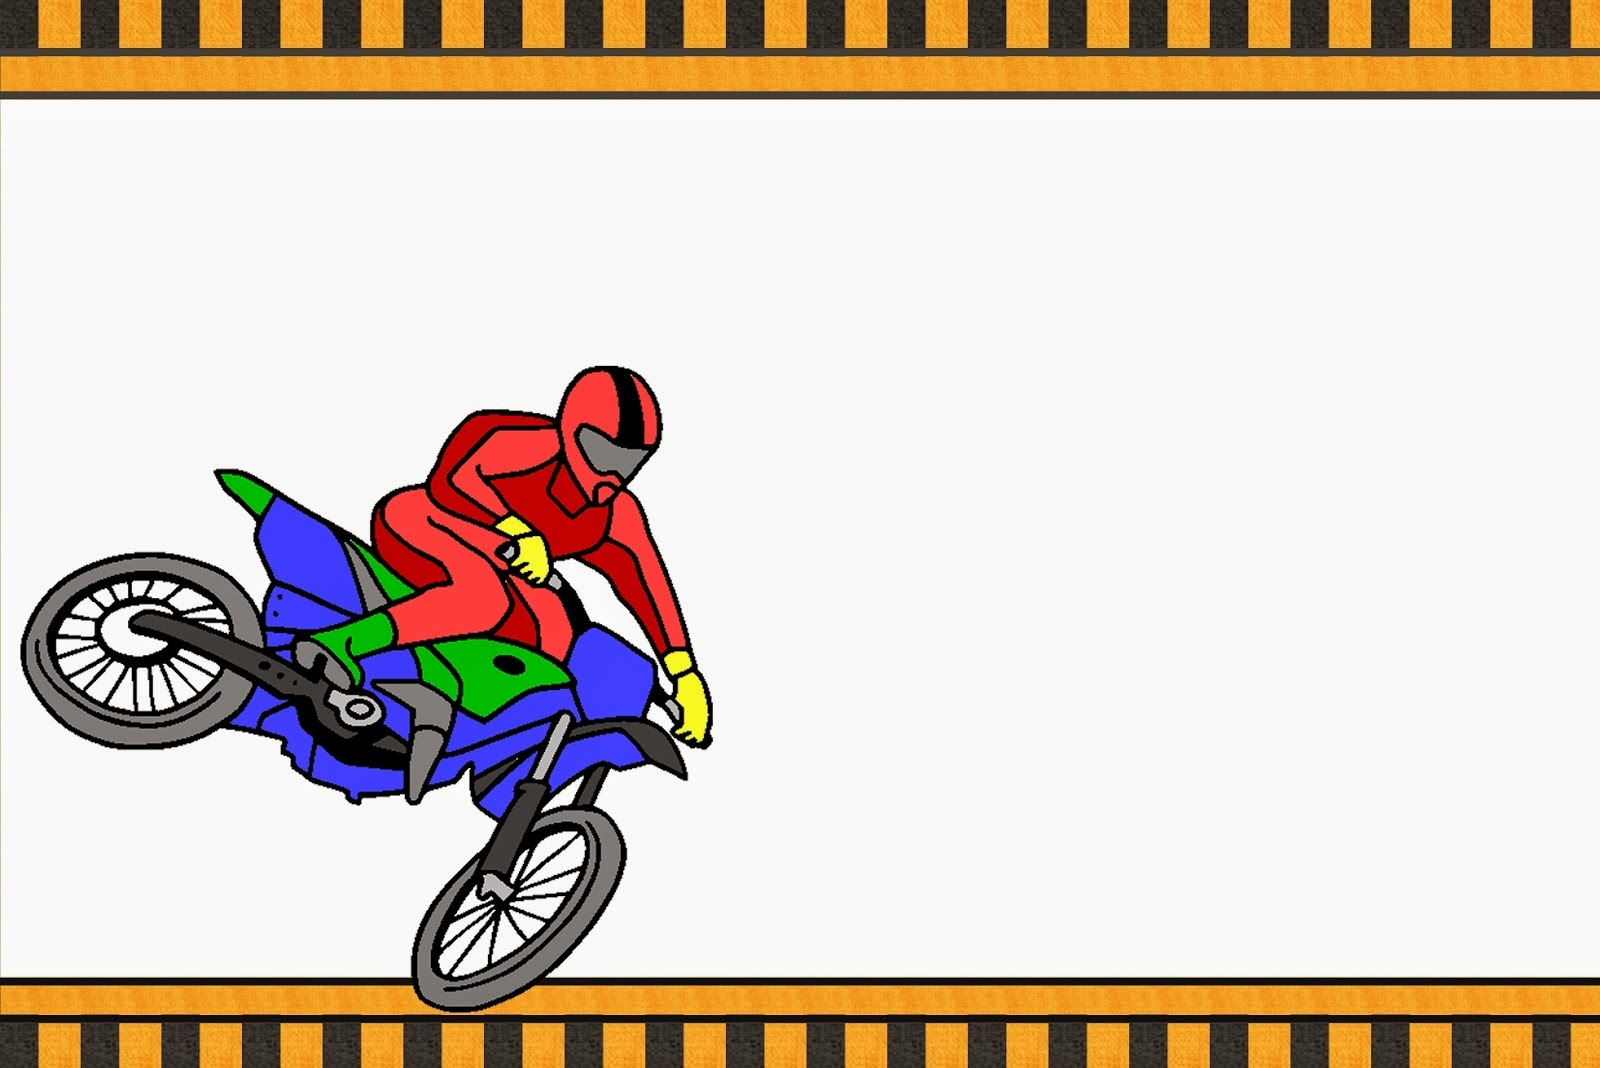 Motocross: Free Printable Invitations. | Oh My Fiesta! in english